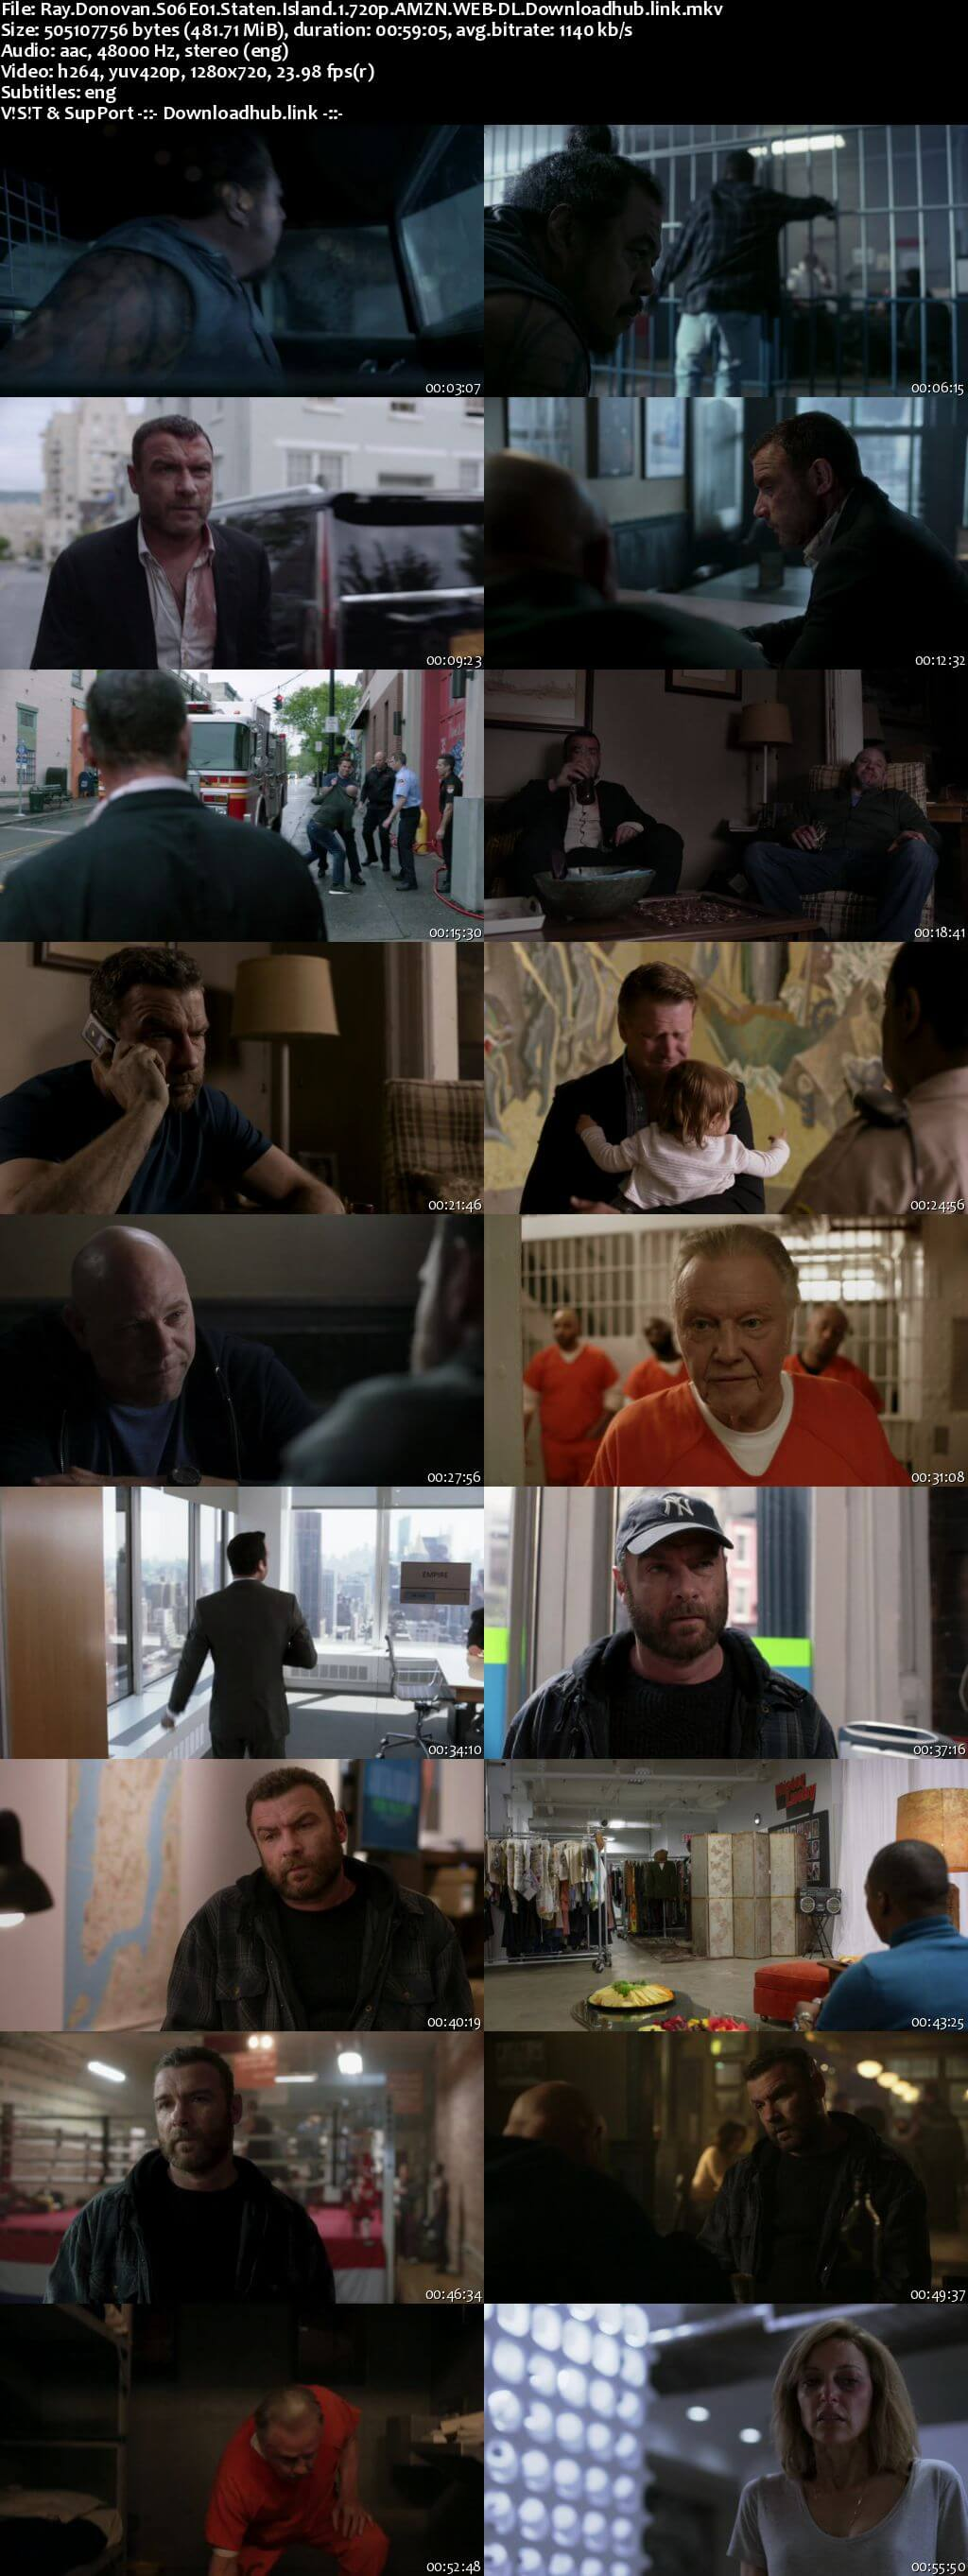 Ray Donovan S06E01 450MB AMZN WEB-DL 720p ESubs